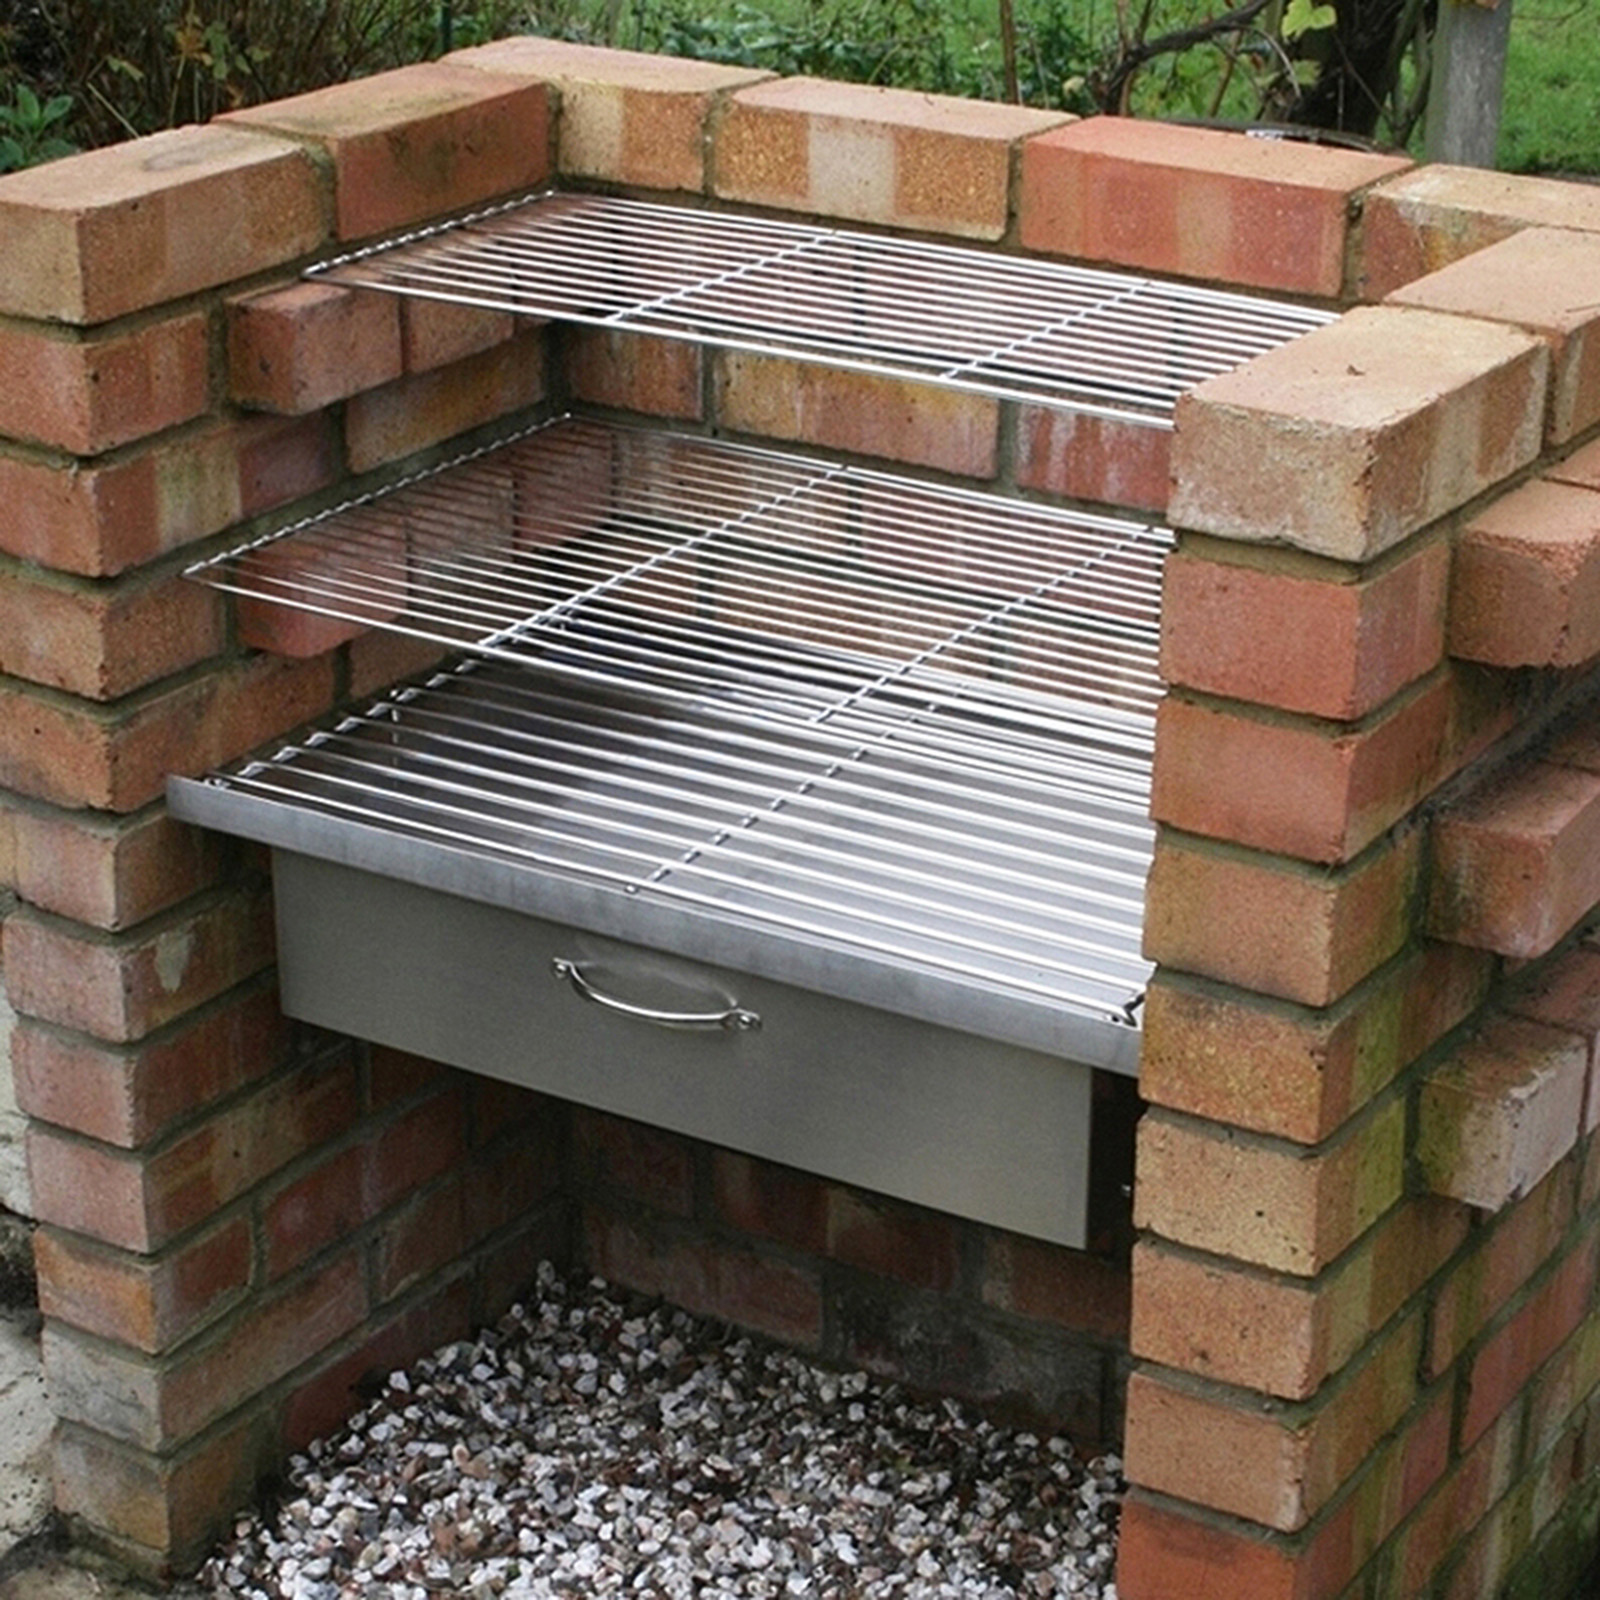 Best ideas about DIY Portable Charcoal Grill . Save or Pin DIY Brick BBQ System plete Set Grills Warming Draw Now.